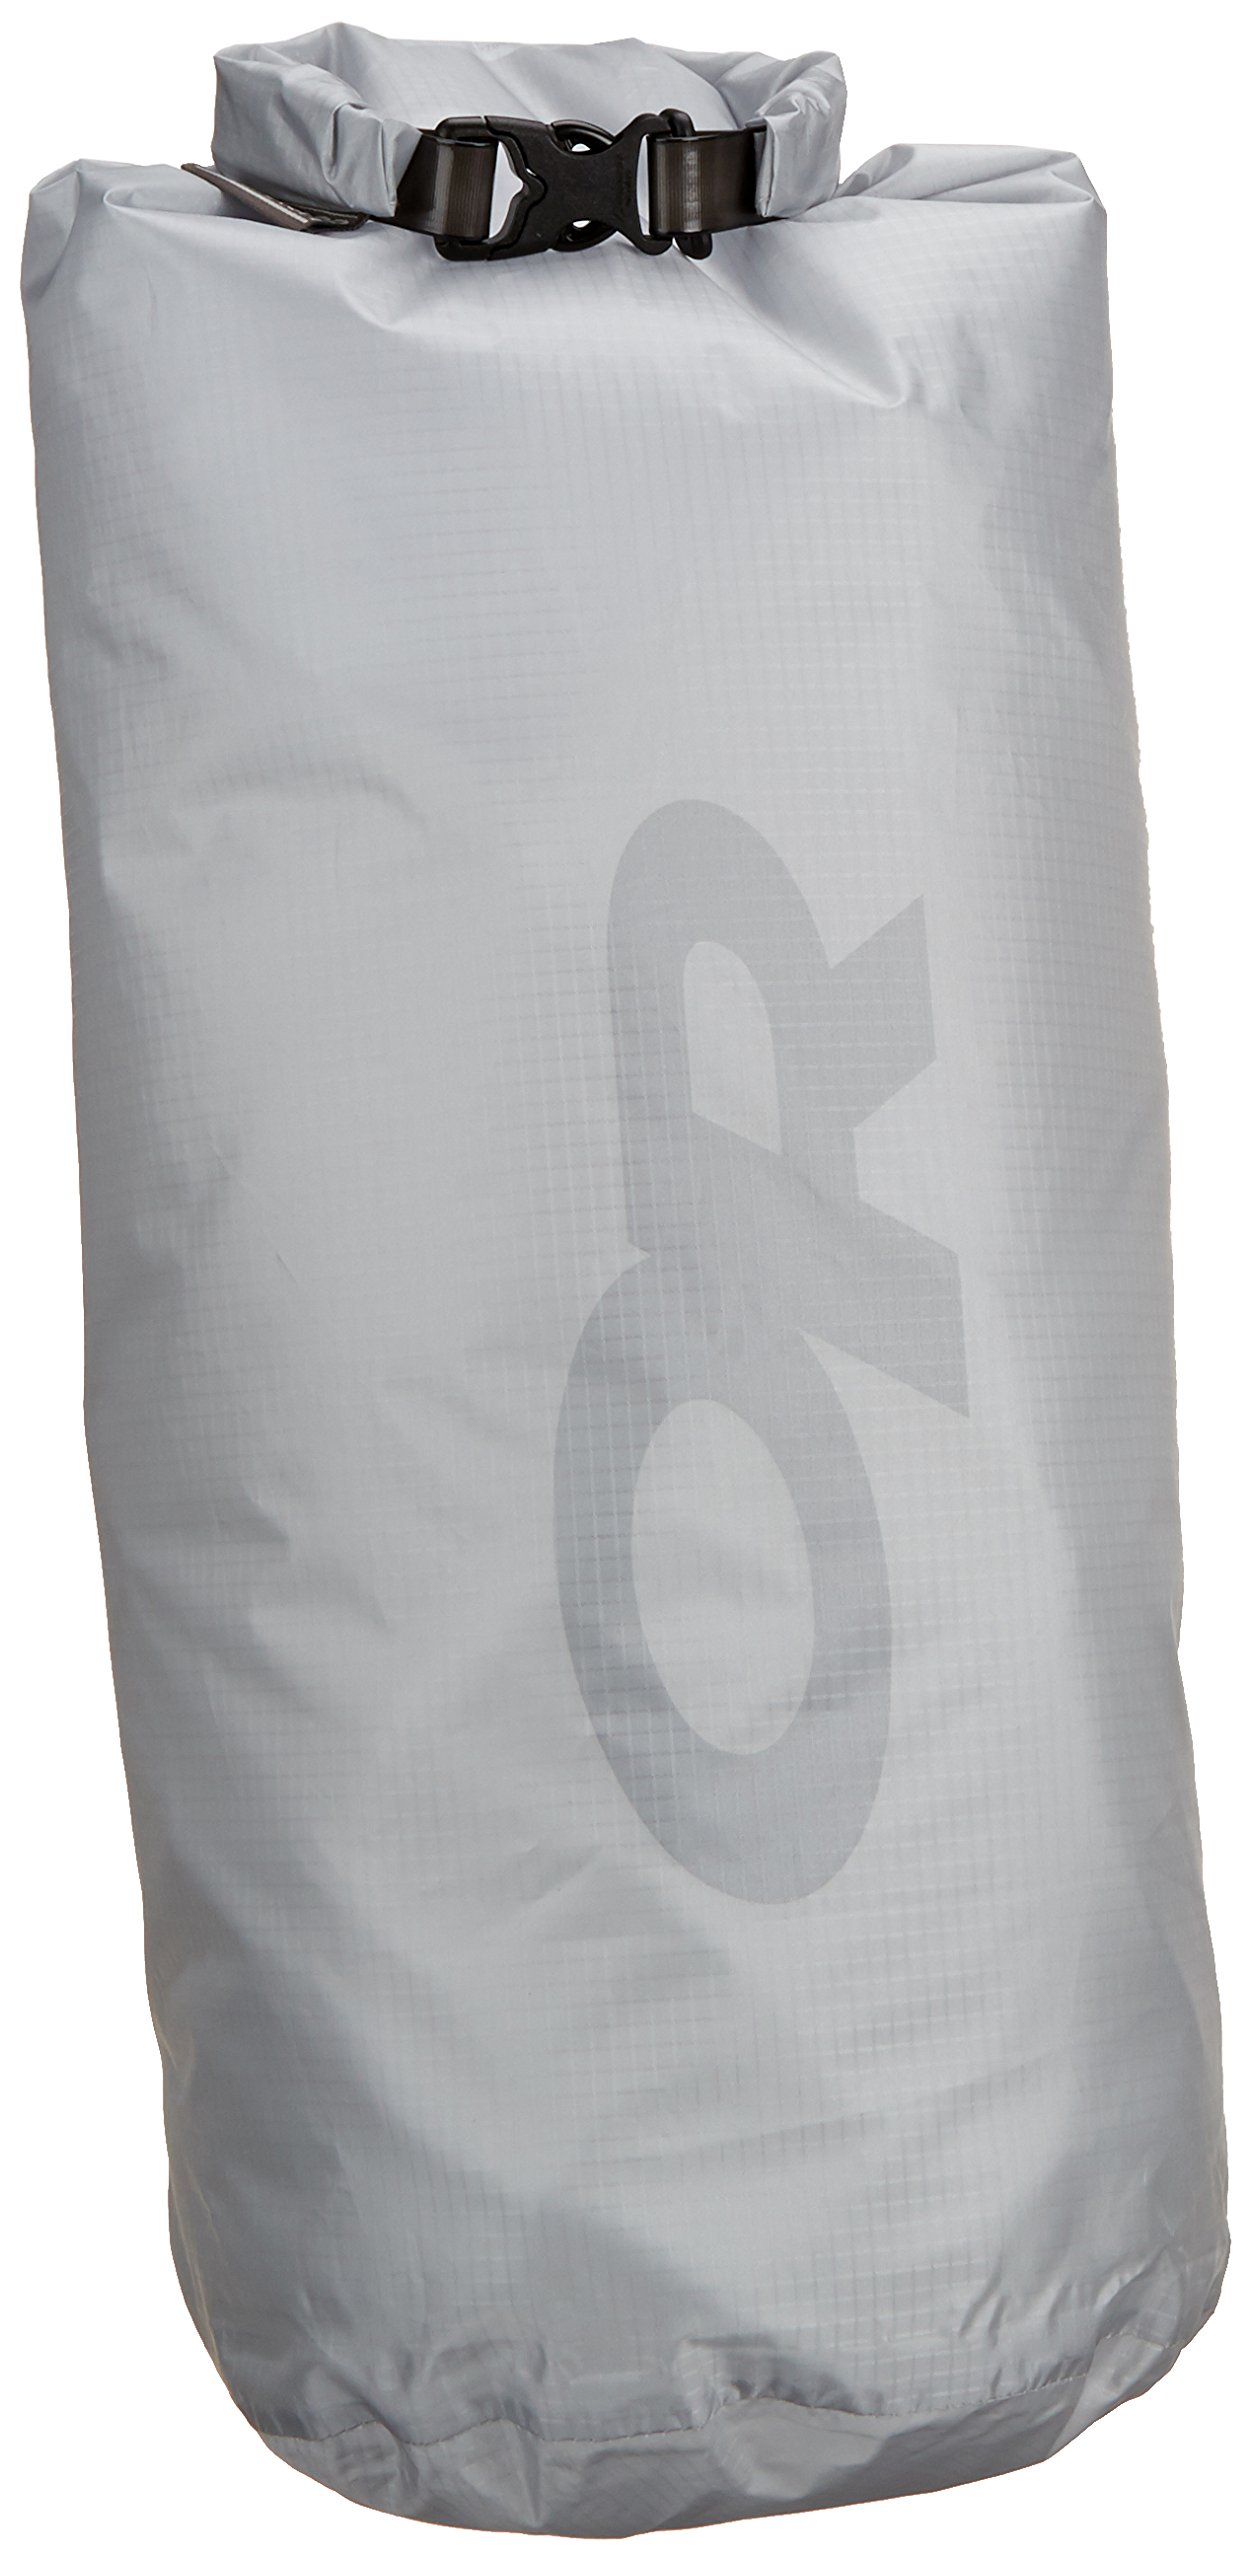 Outdoor Research Ultralight Dry Sack,Alloy,55-Liter by Outdoor Research (Image #1)